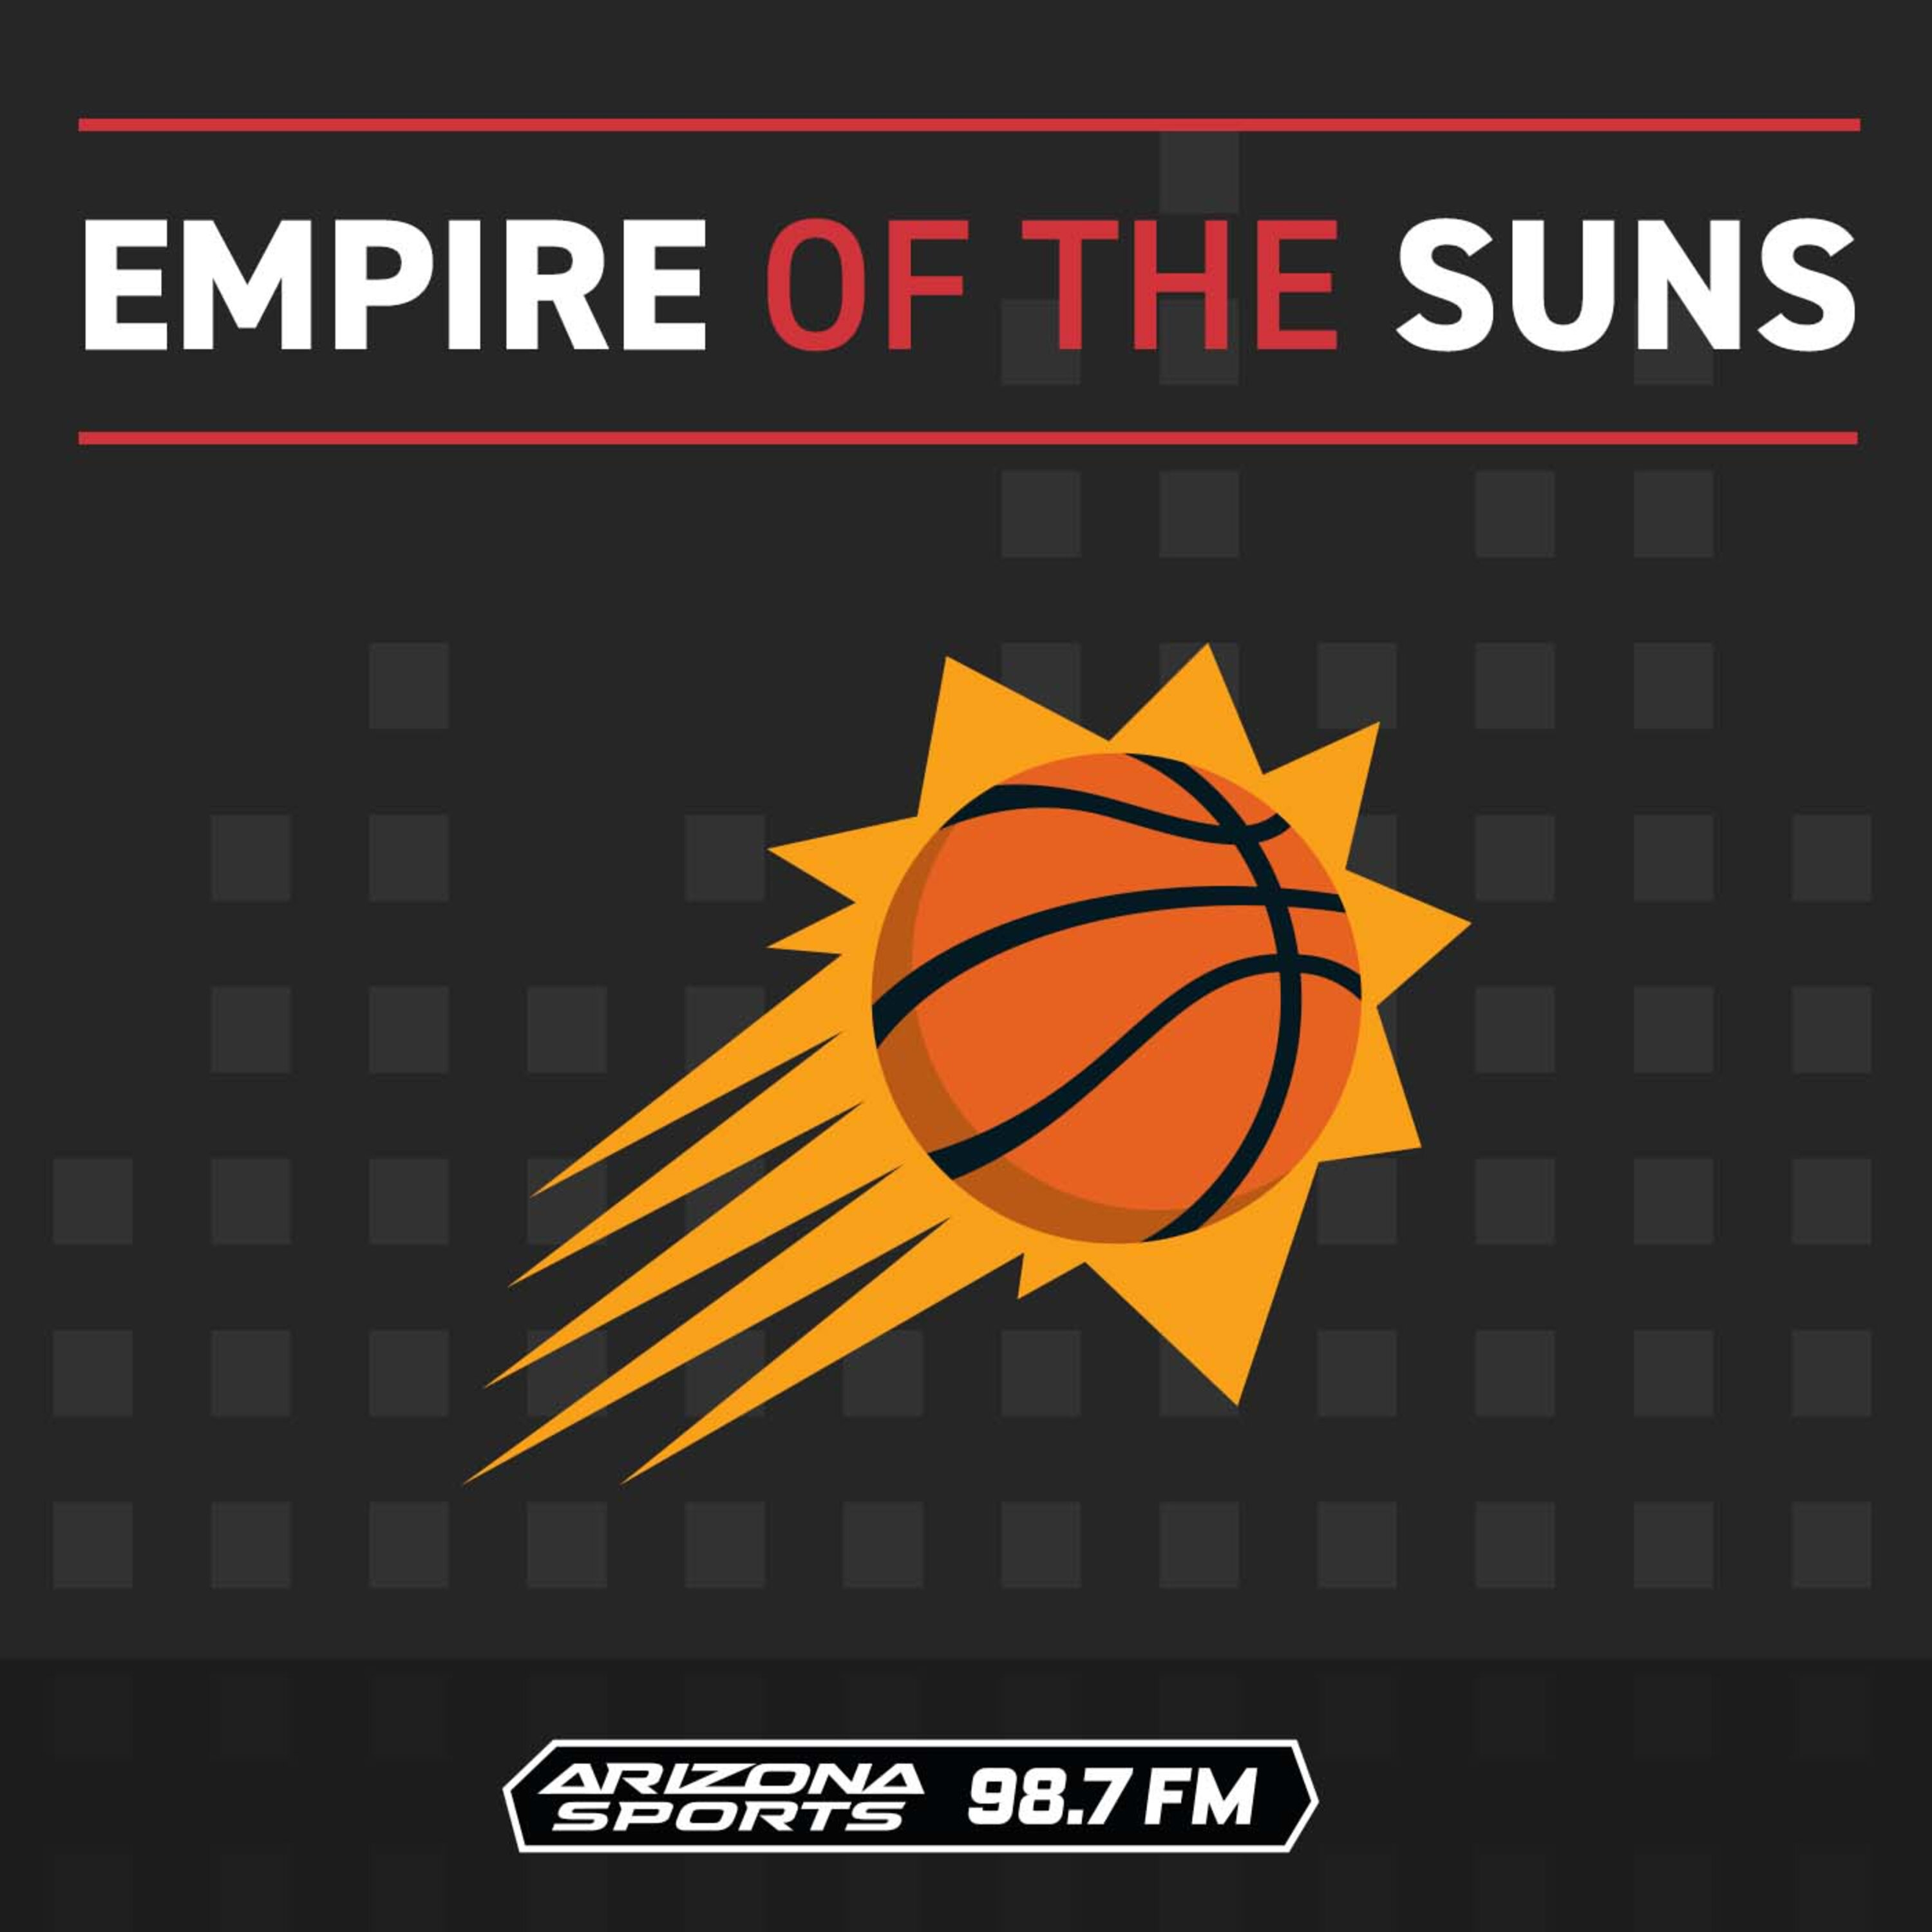 New Suns jerseys + a big-picture offseason look before the NBA Draft, free agency - Oct. 29